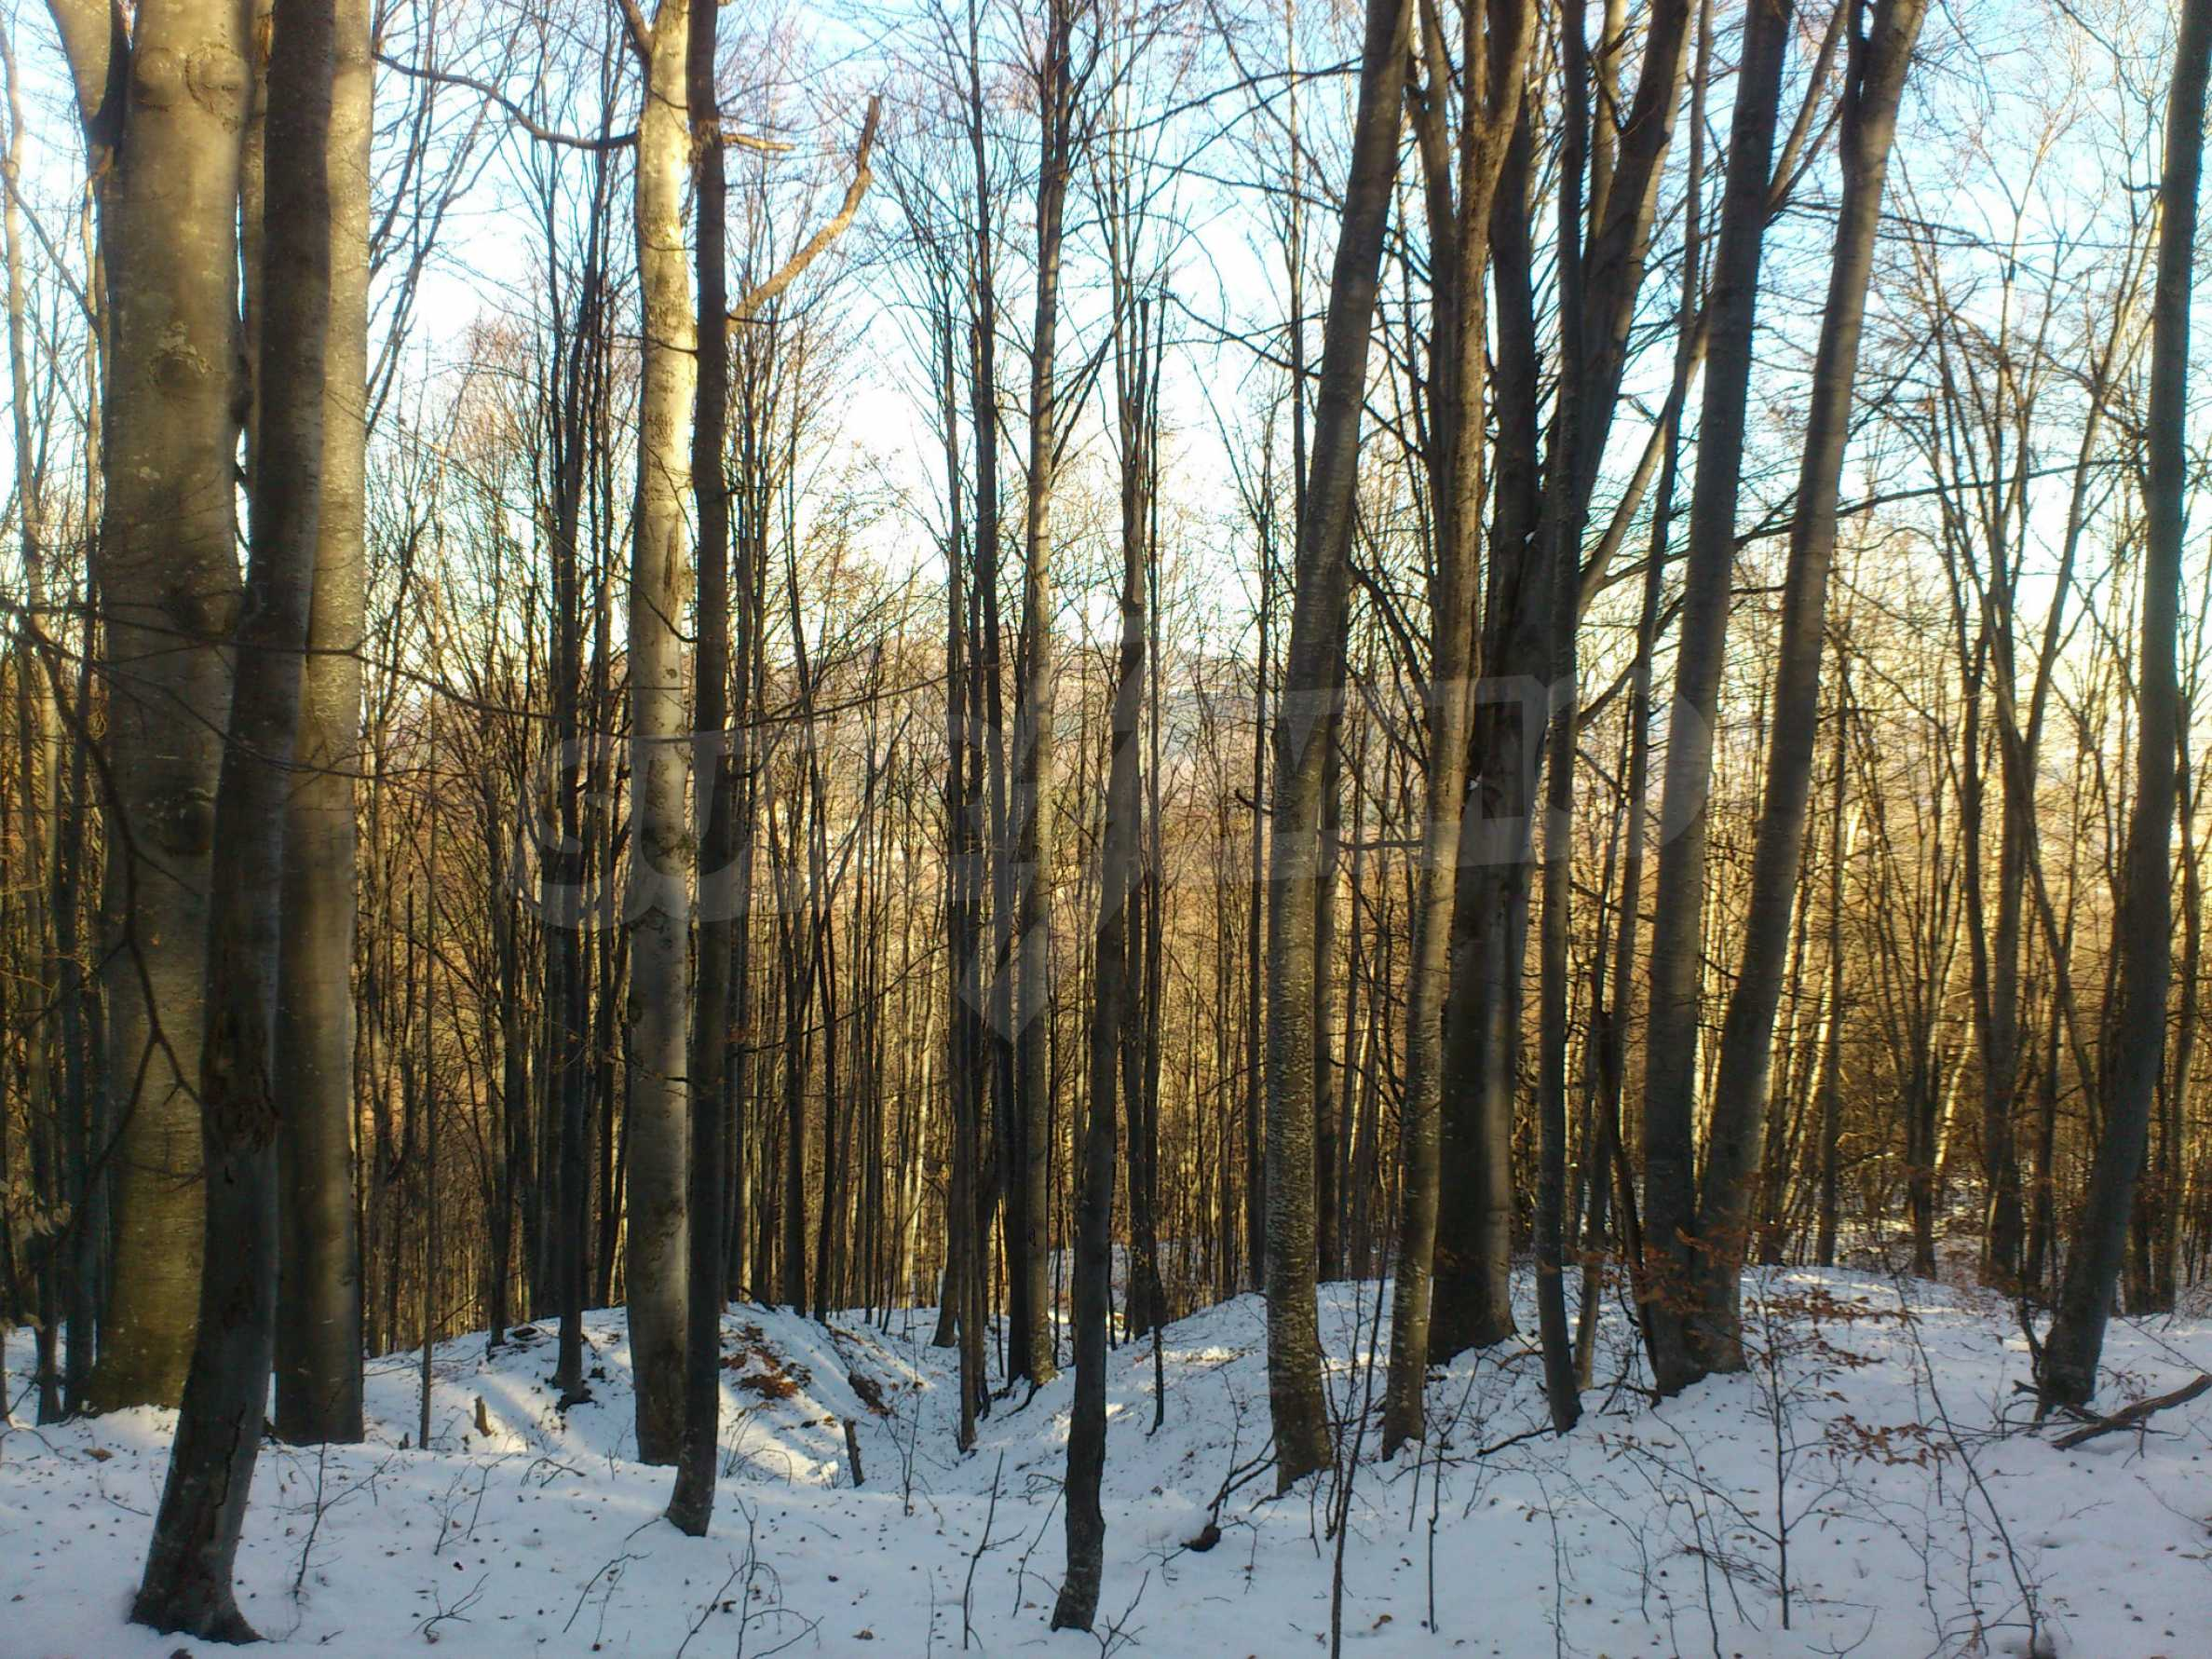 Deciduous forest near Aprilci